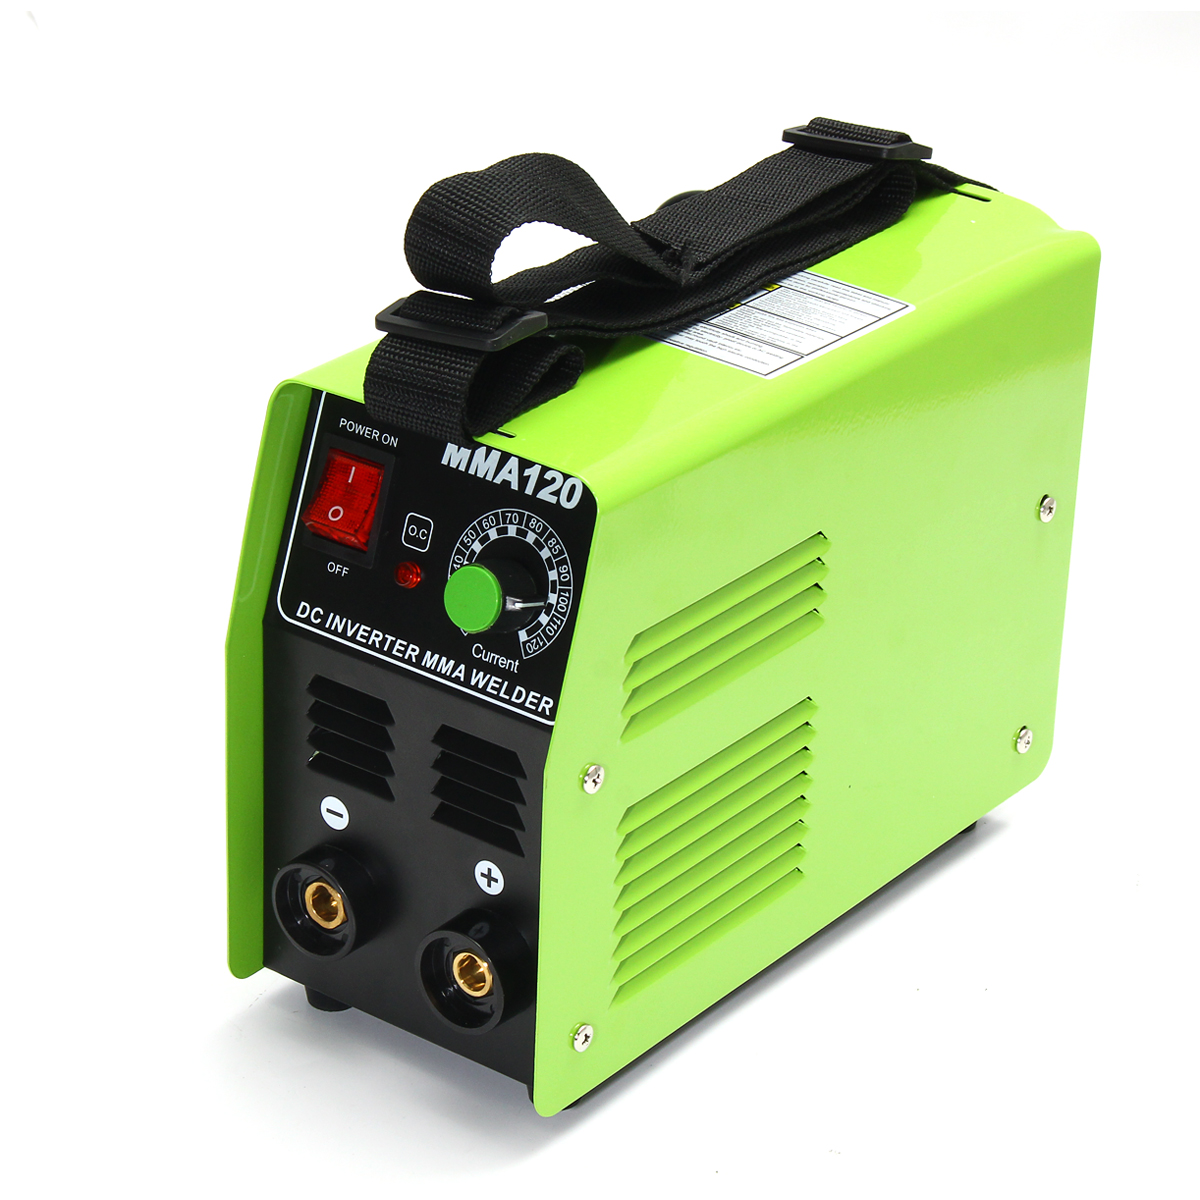 Portable MMA-120 Welding Machine DC Inverter for MMA Welding Tools 110V 220V